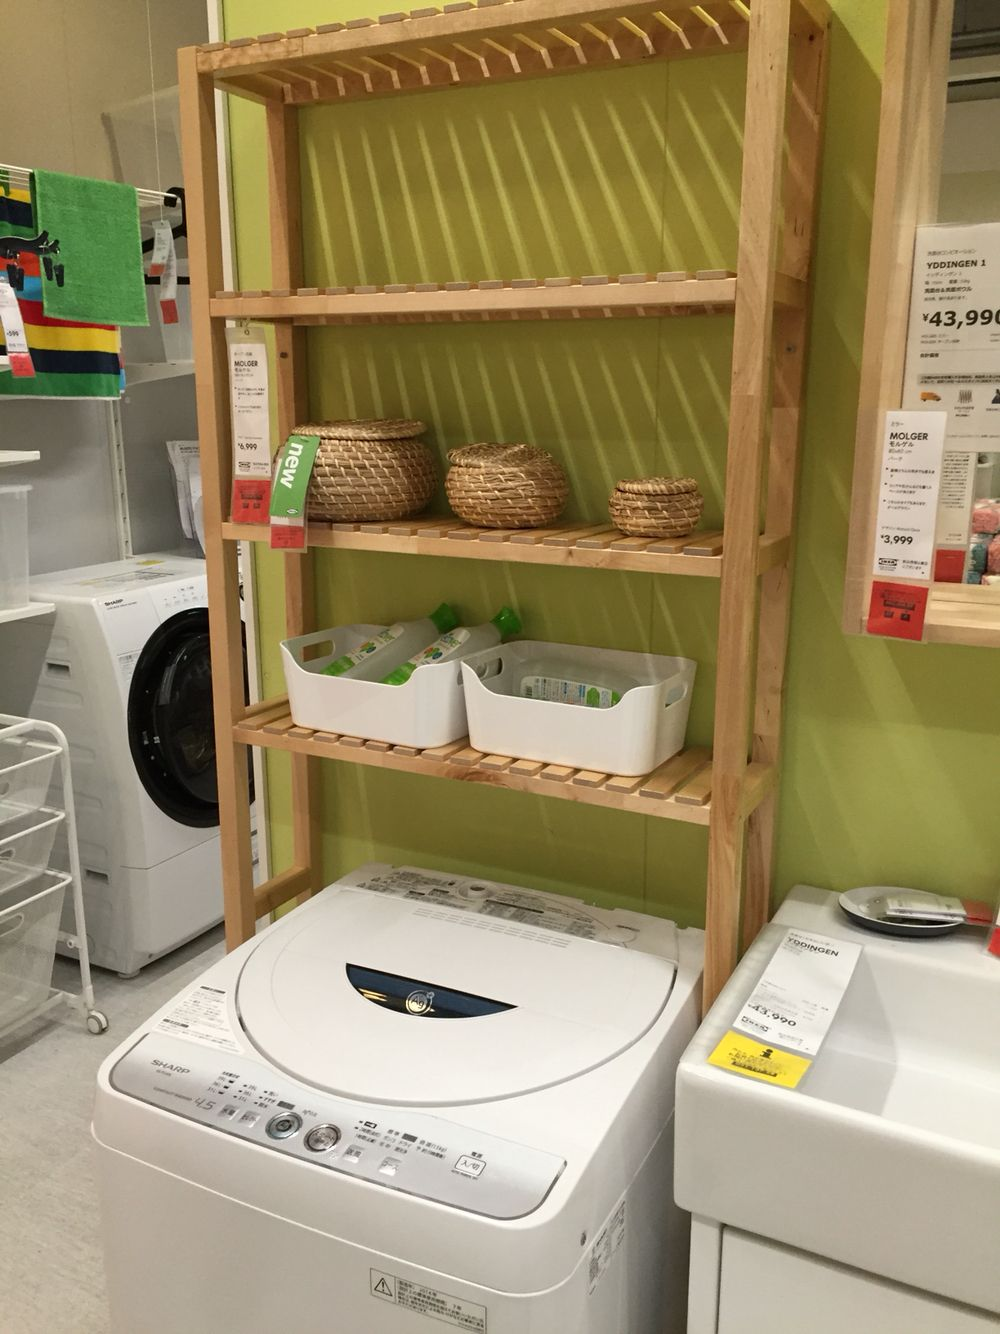 Ikea Above Washing Machine Wooden Shelf Regal Uber Waschmaschine Holzregal Waschmaschine